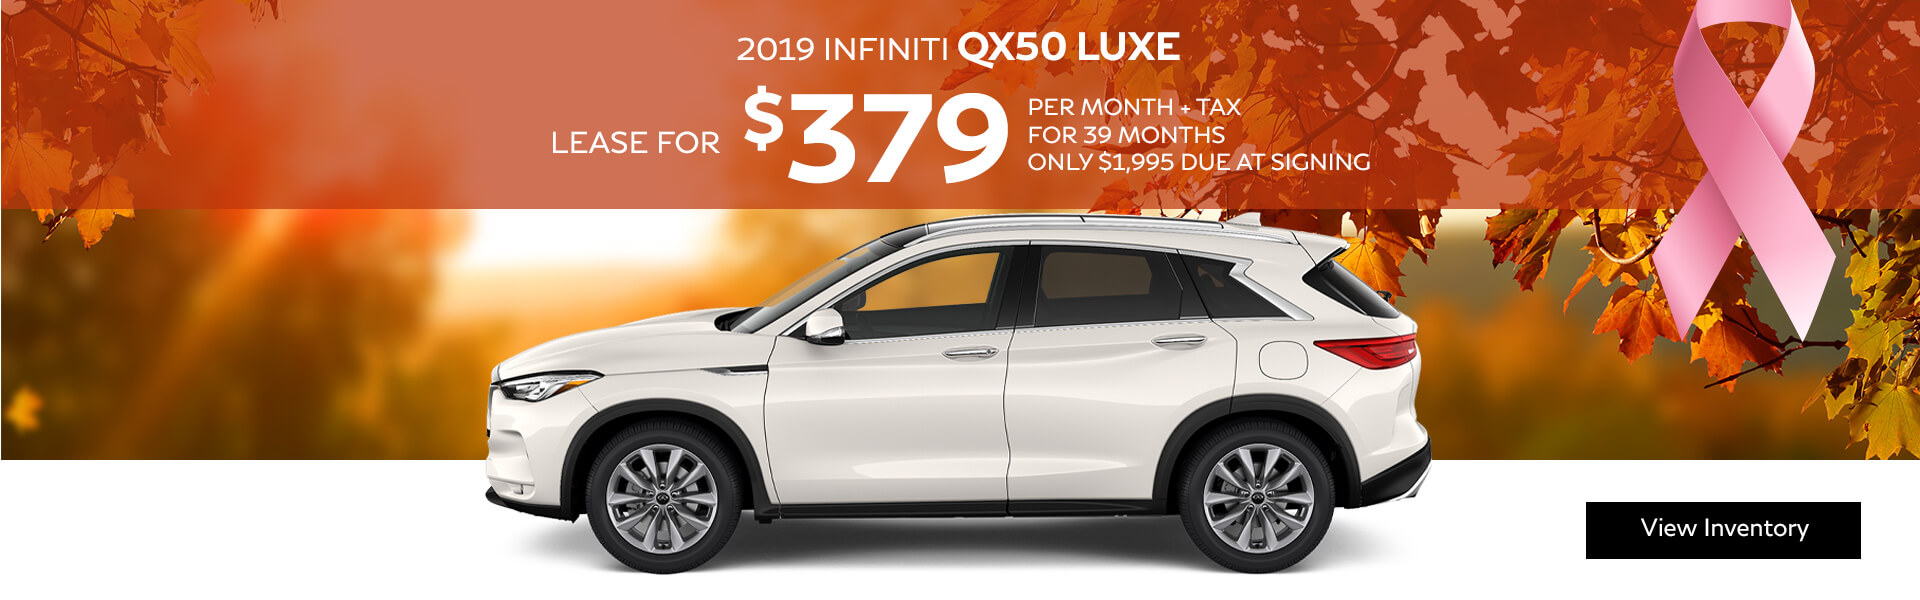 QX50 LUXE - Lease for $299